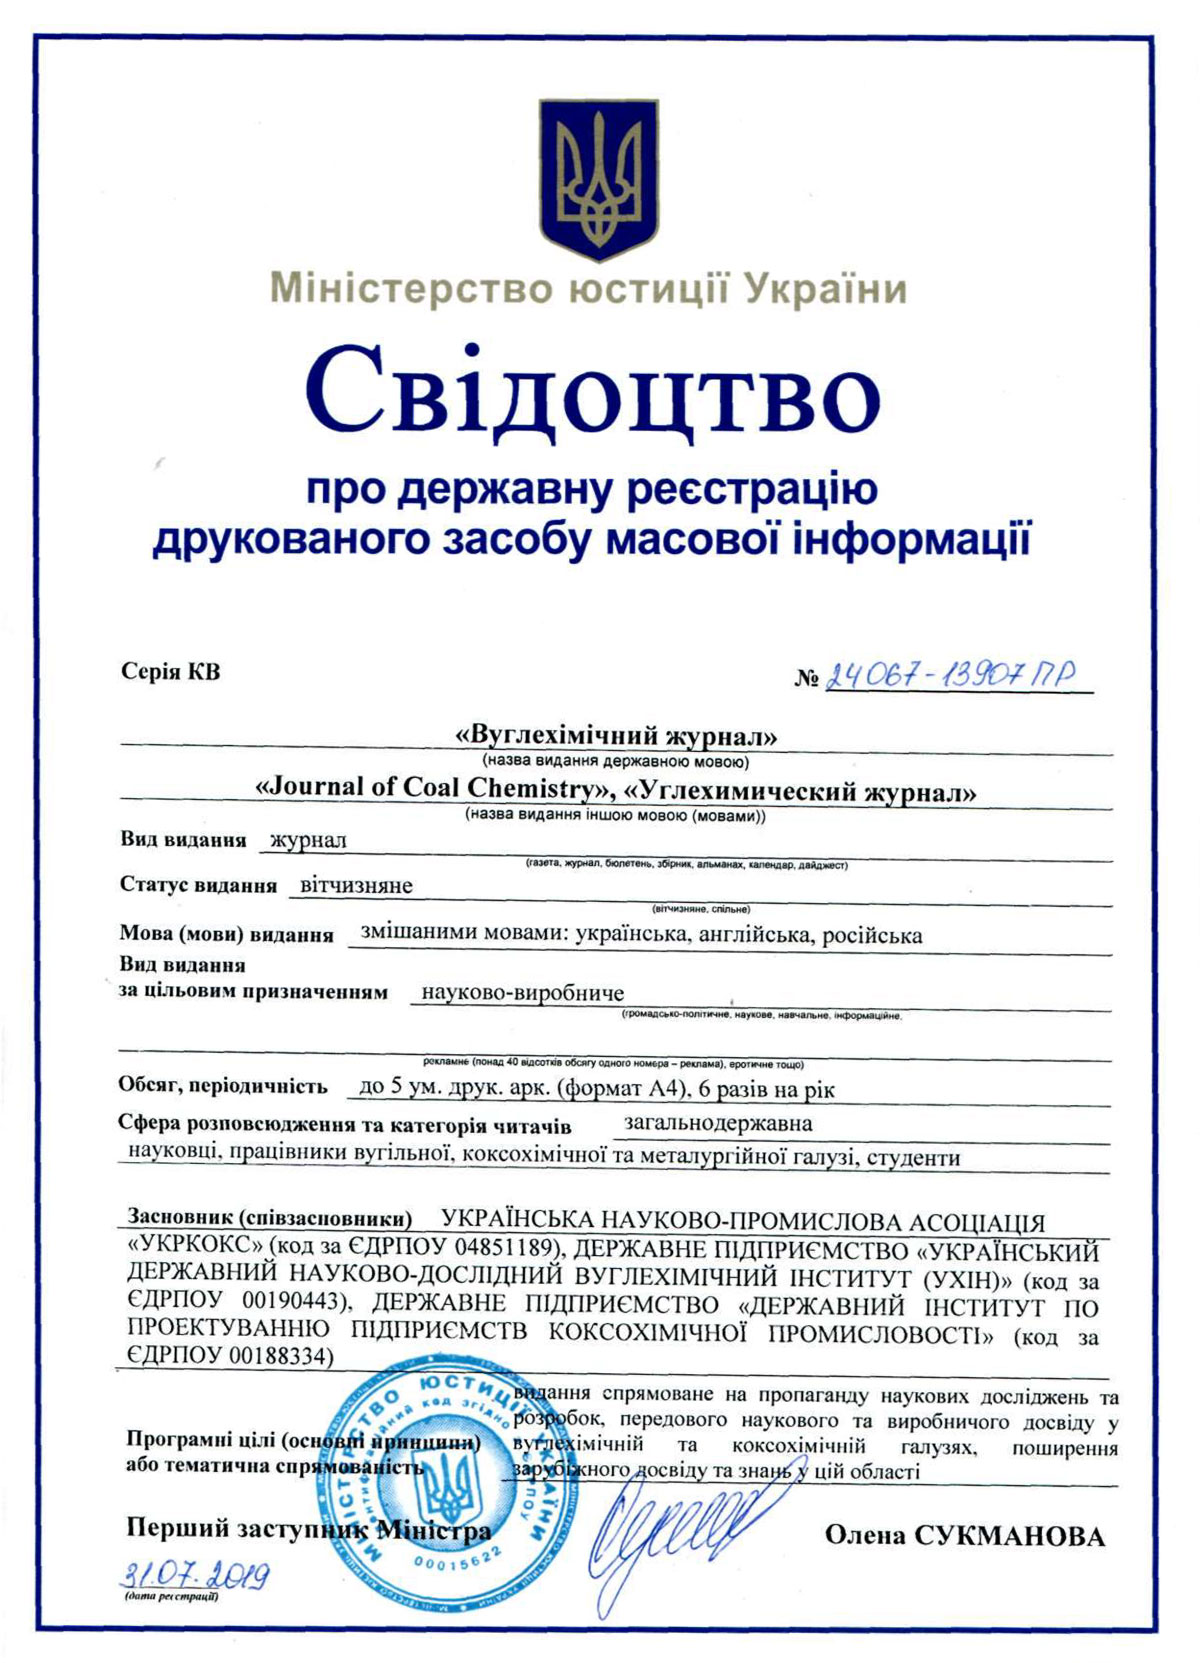 Certificate of state registration of the print media ВУГЛЕХІМІЧНИЙ ЖУРНАЛ